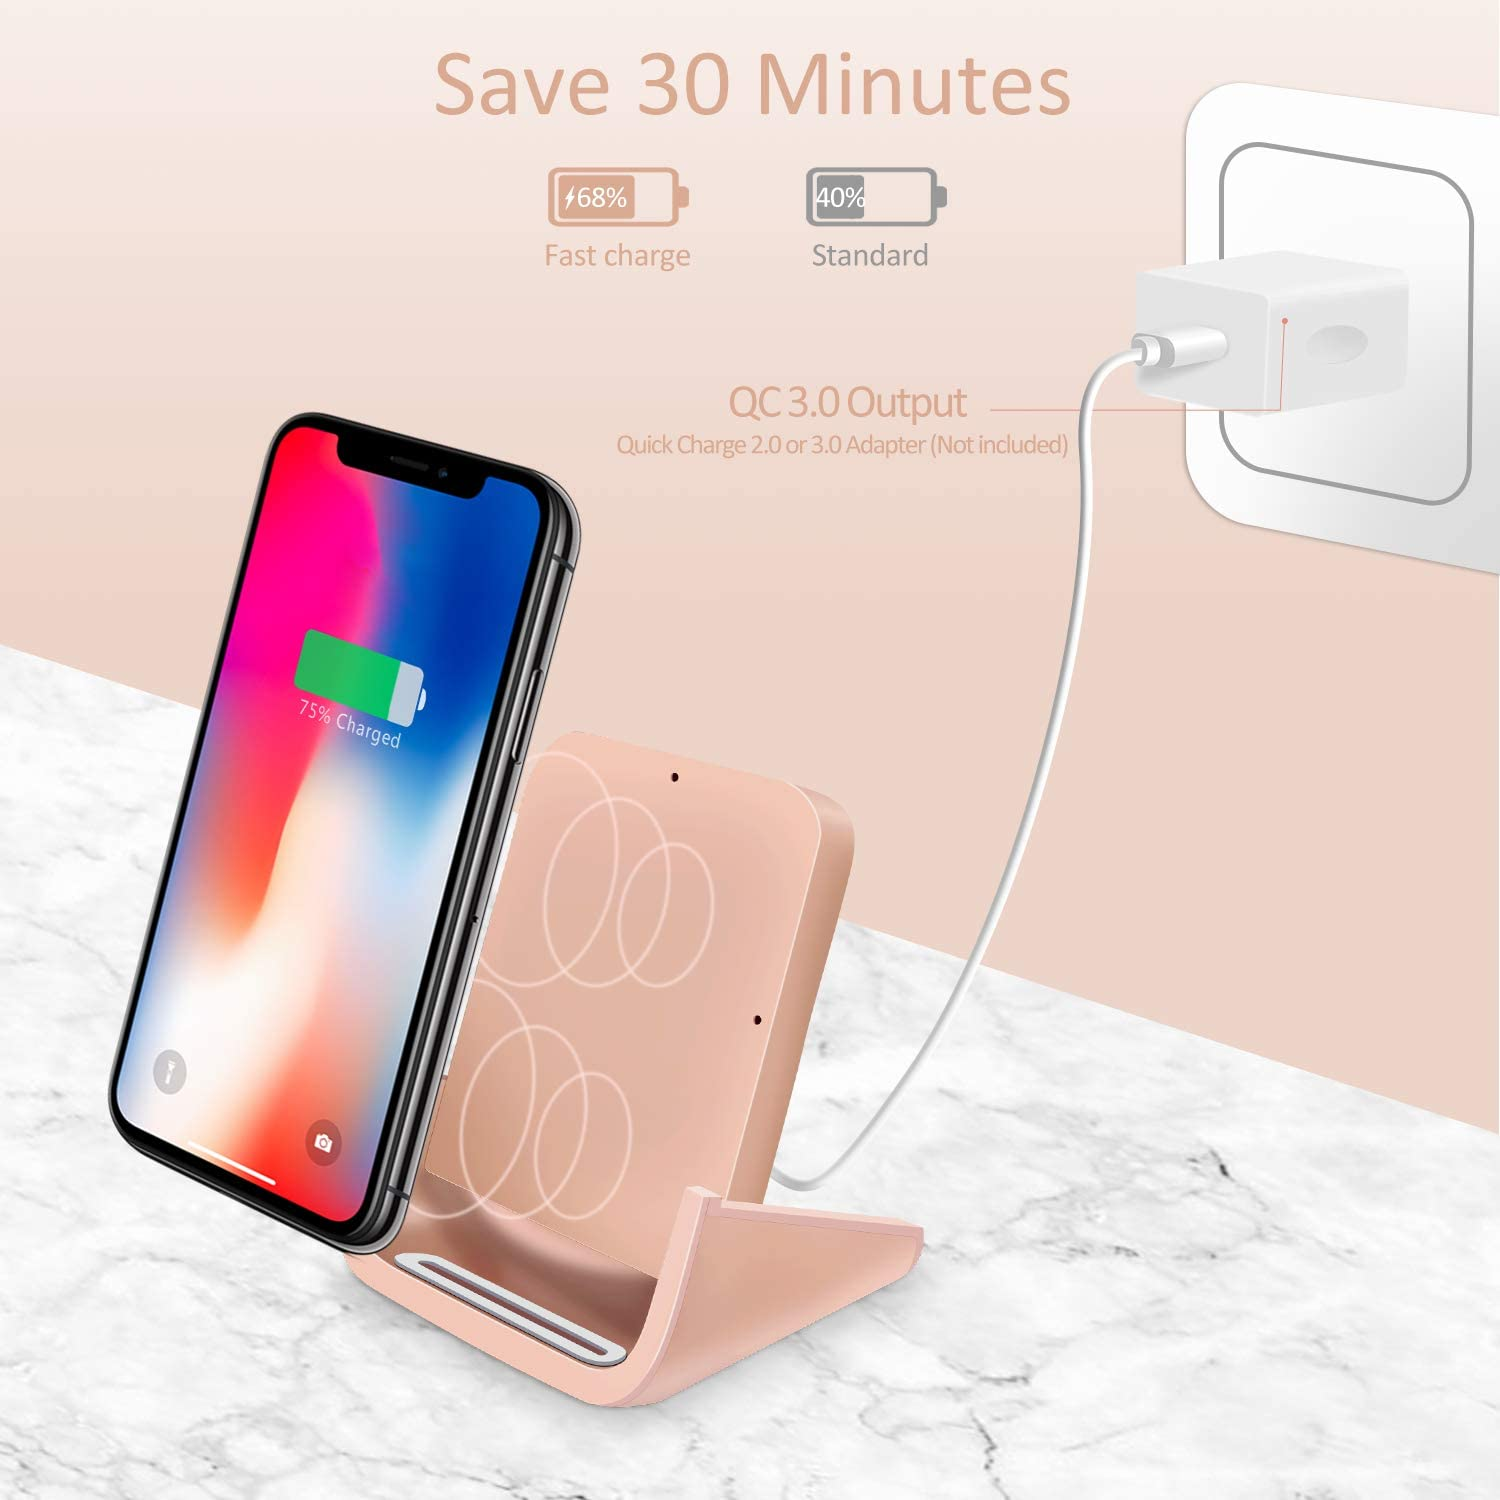 X 8 8 Plus 11 Pro Max No AC Adapter Xs Max Note 10 Note 9 and More XR XS 11 Pro Wireless Charger Stand Qi-Certified for iPhone 11 Rose Gold 10W Phone Dock Fast-Charging Galaxy S10 S9 S8